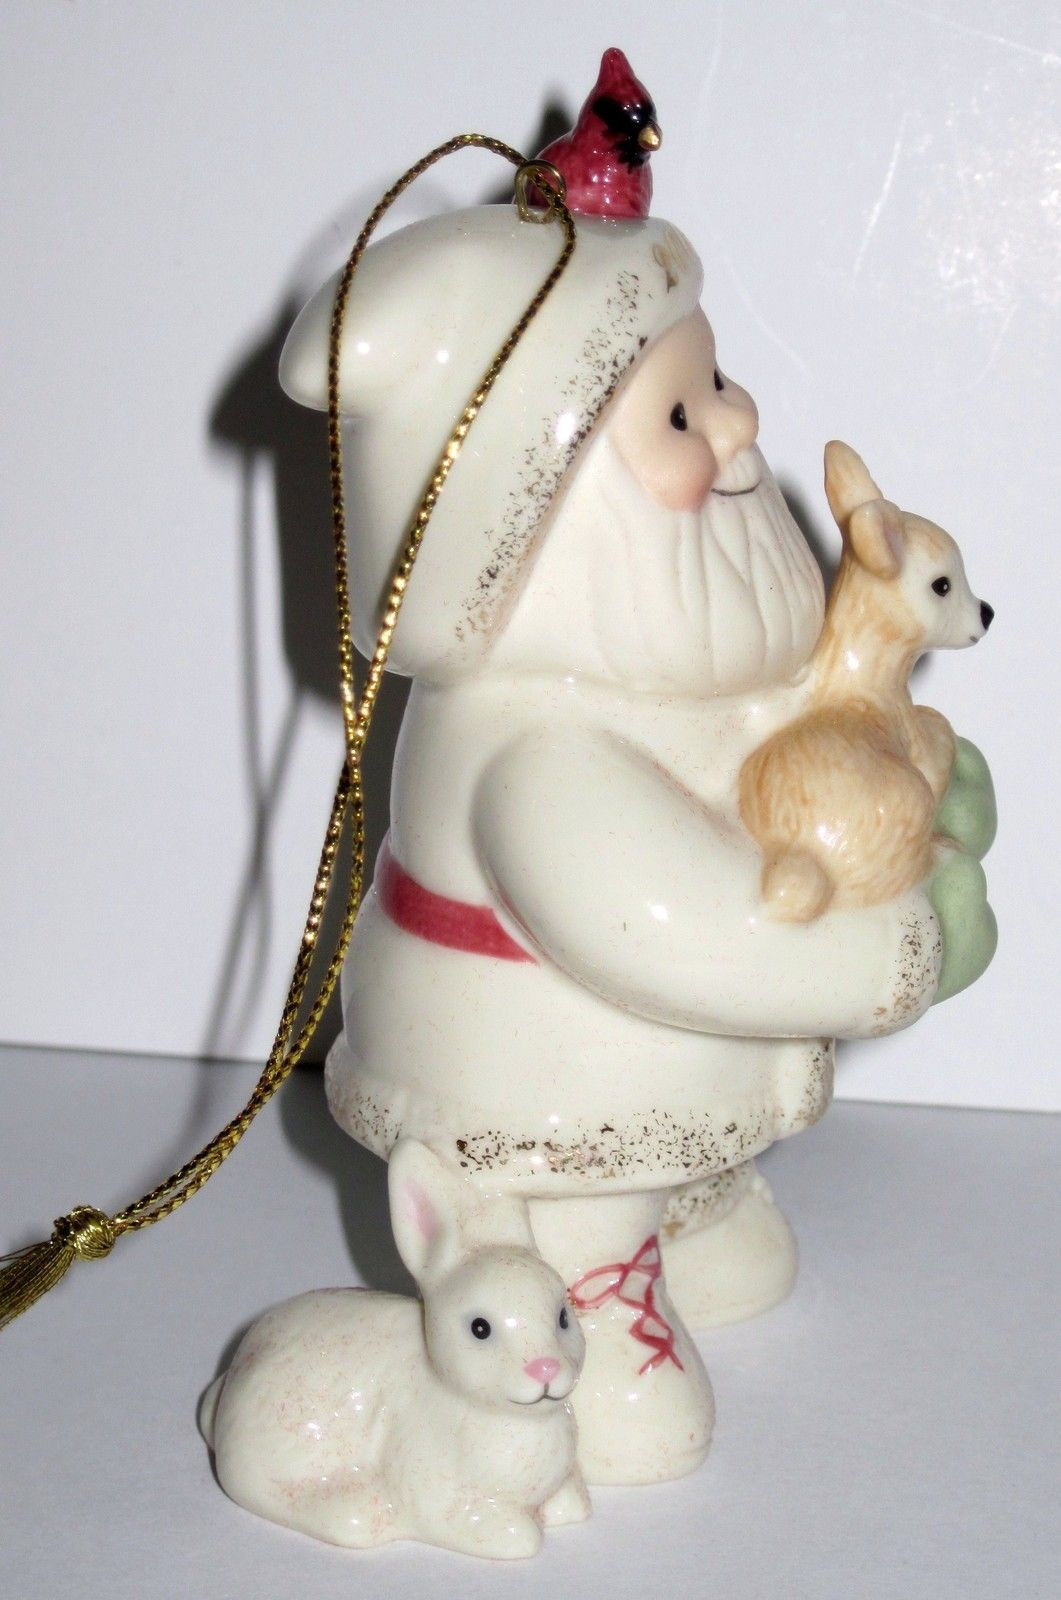 NIB Lenox 2008 Annual Santa's Woodland Friends Christmas Ornament porcelain image 4